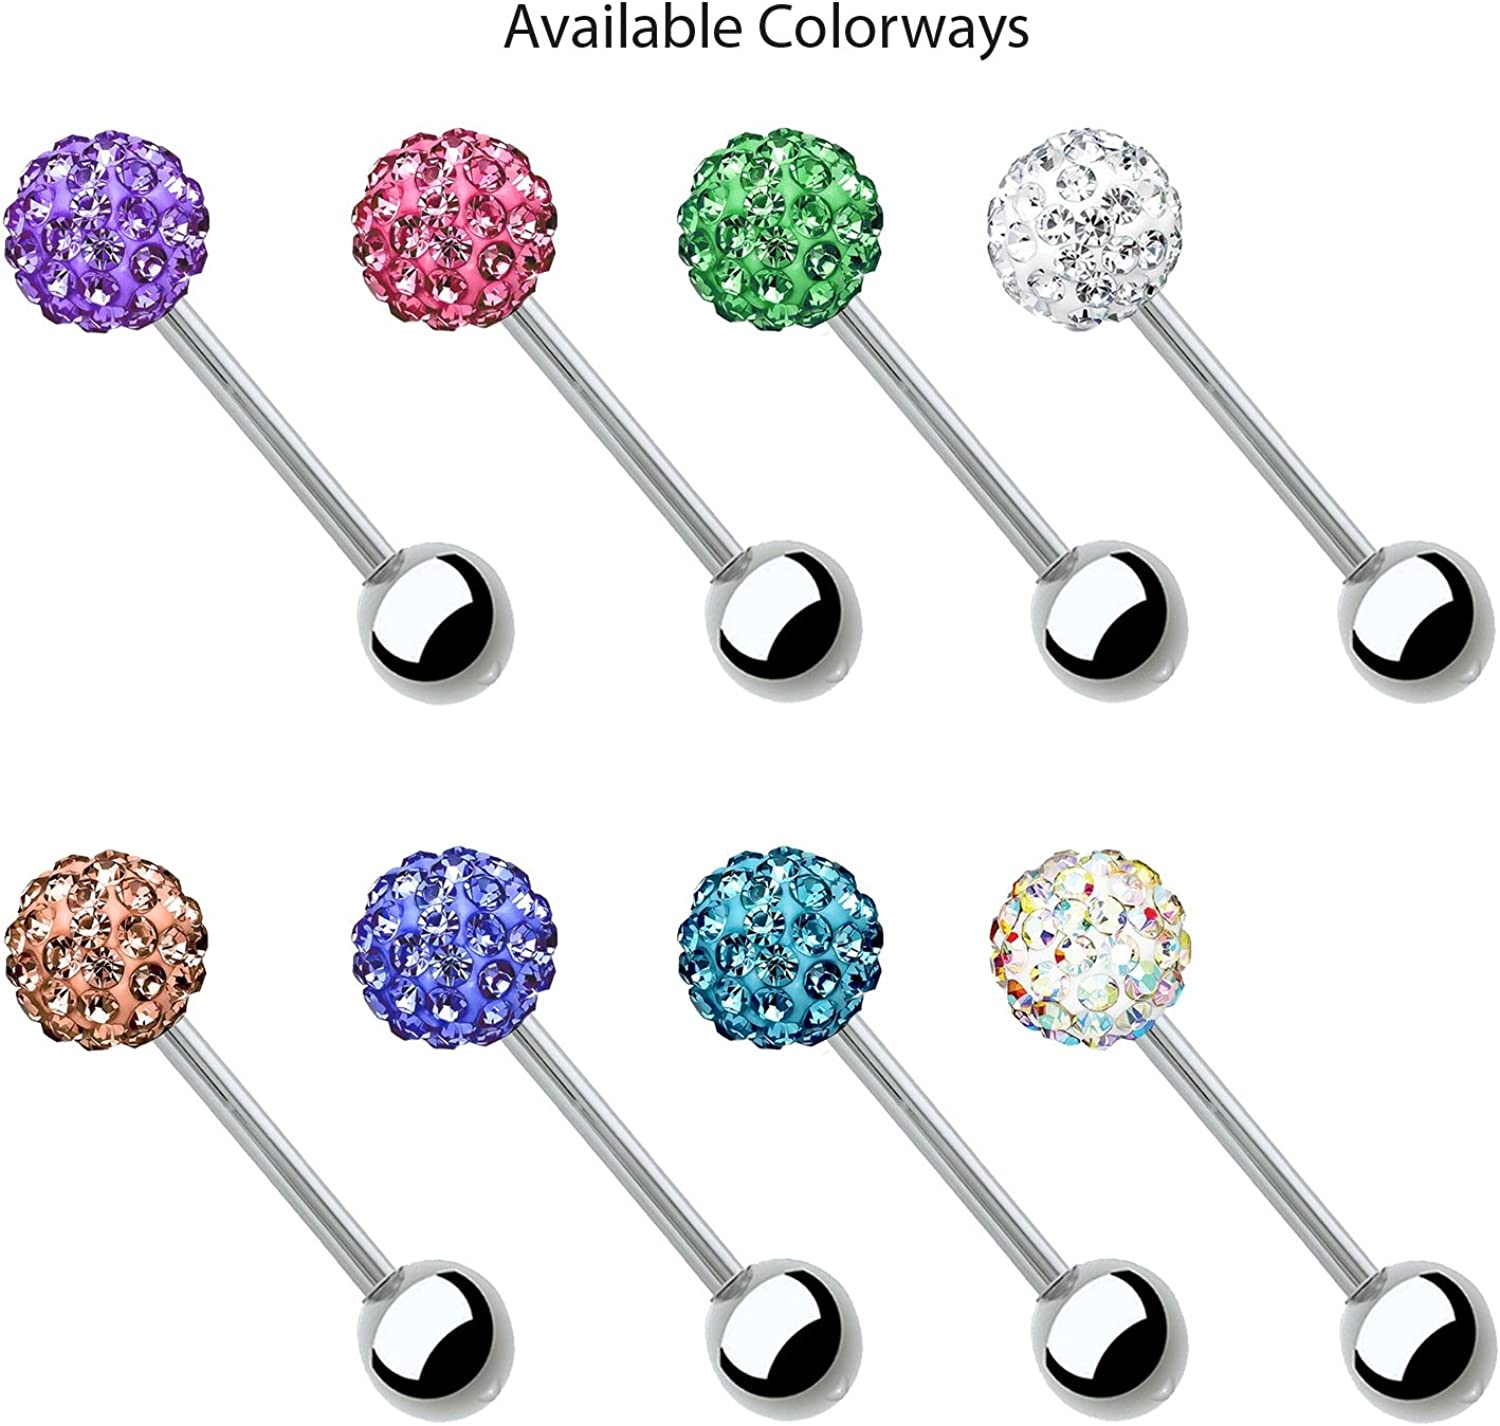 Crystal Pill Shaped Surgical Steel Metal Ring Tongue Piercing Bar Cylinder Stud